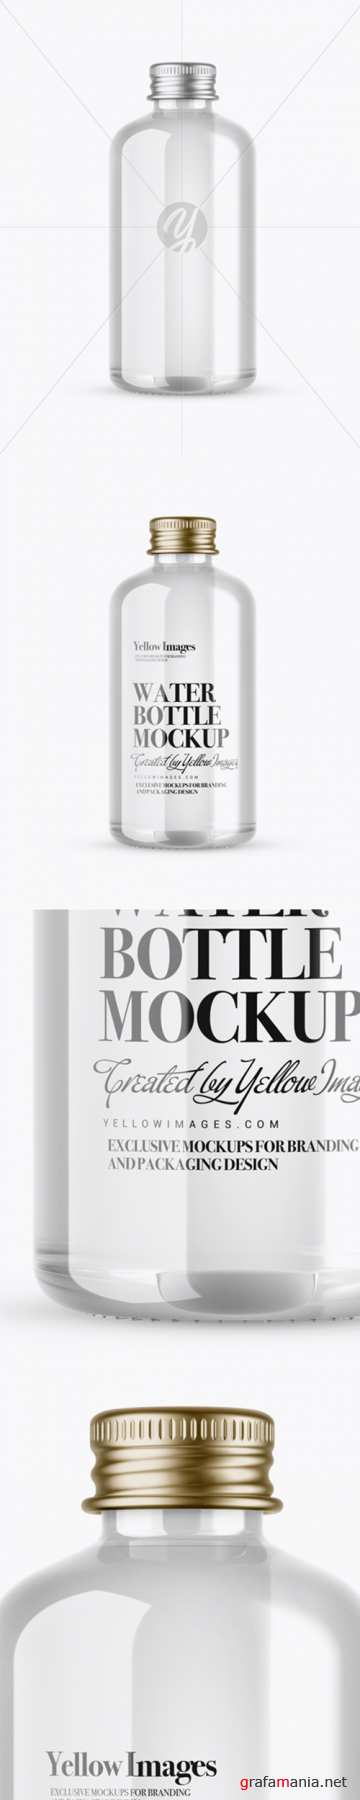 Clear Glass Water Bottle Mockup 21006 TIF